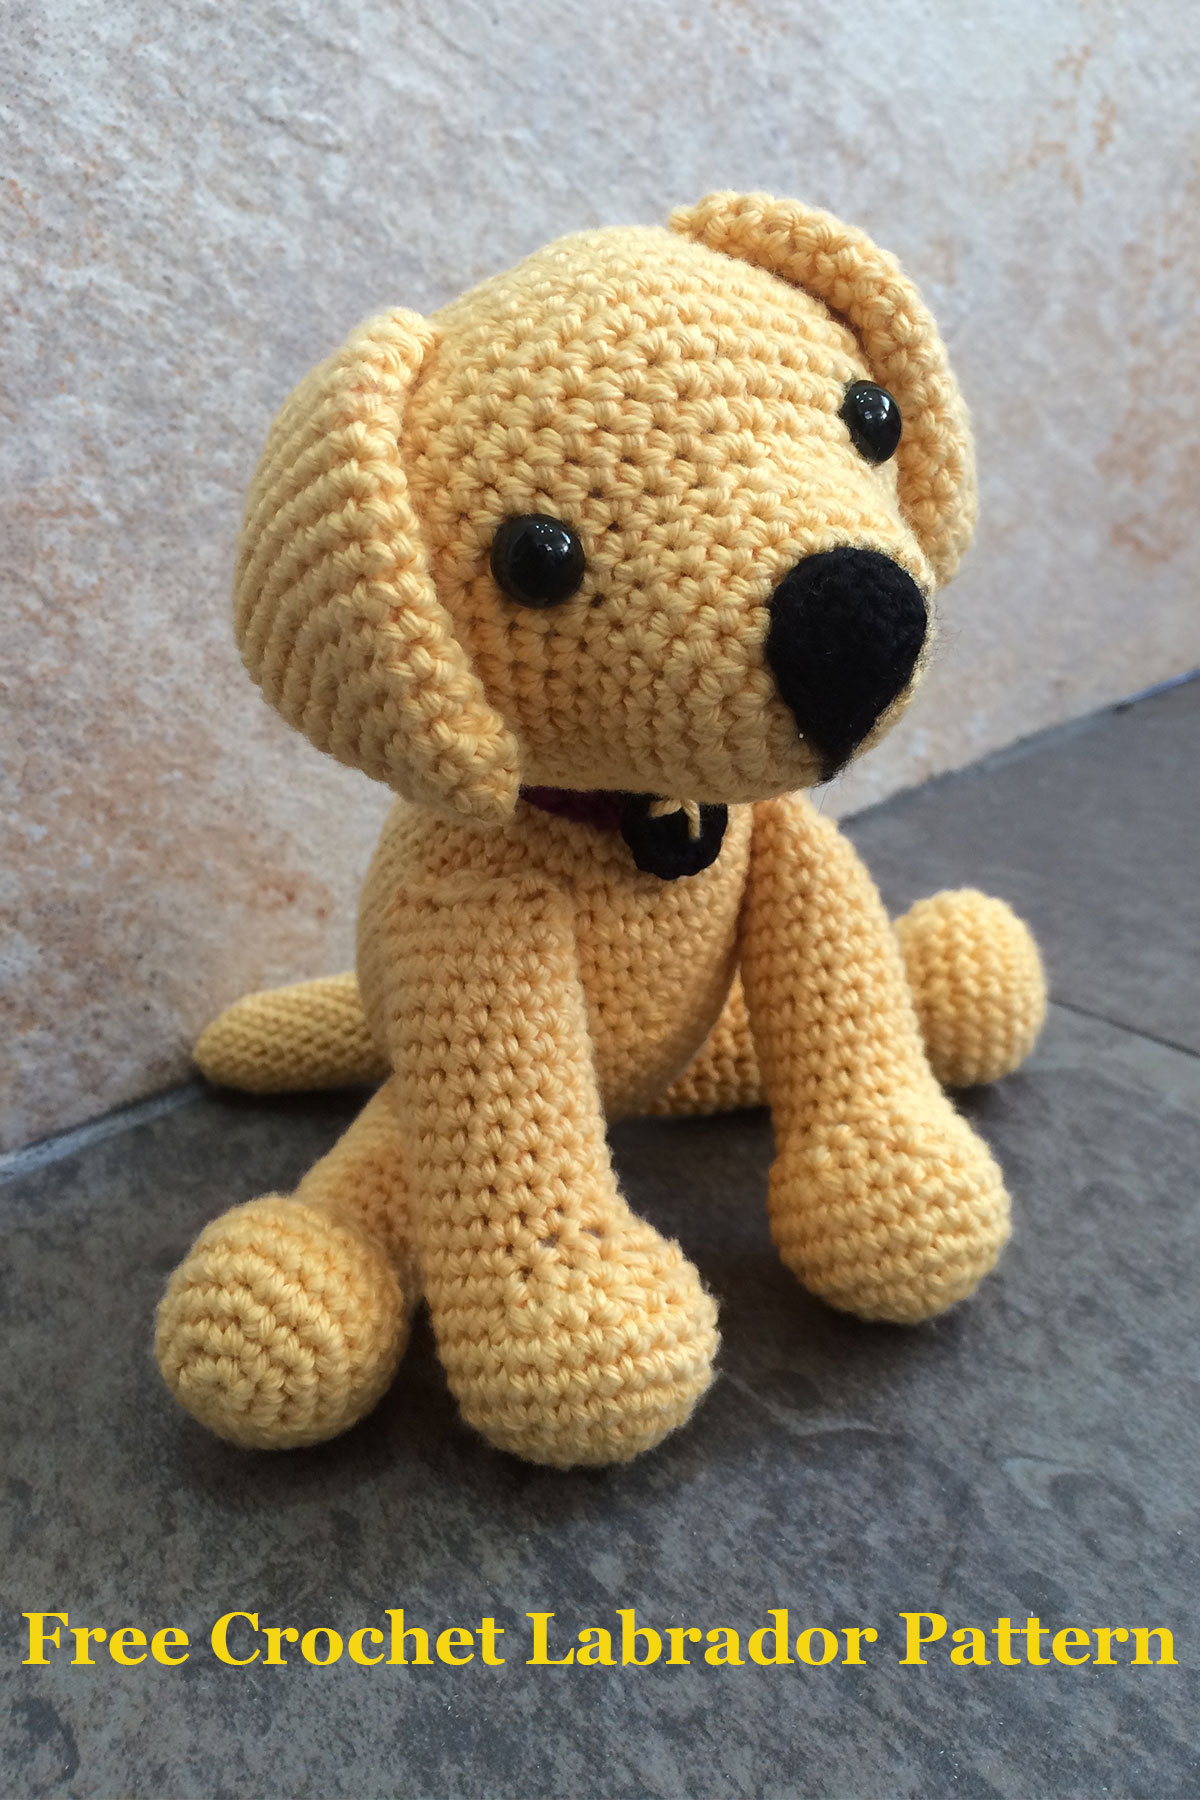 Free Crochet Patterns For Pet Toys : Crochet Labrador: How To Make Your Own Toy Dog - The ...